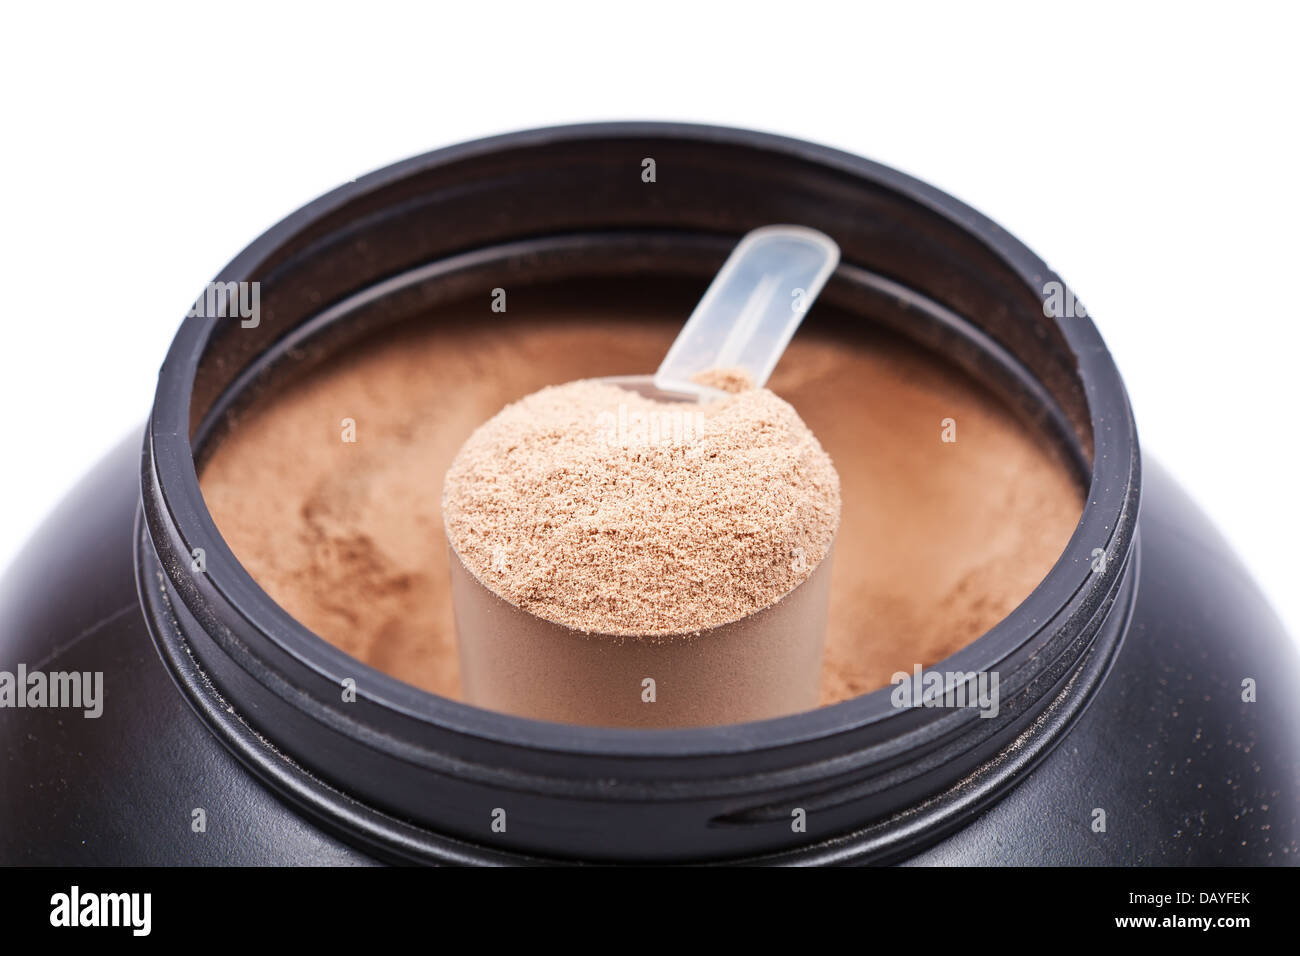 Scoop of chocolate whey isolate protein in a black plastic container on white - Stock Image